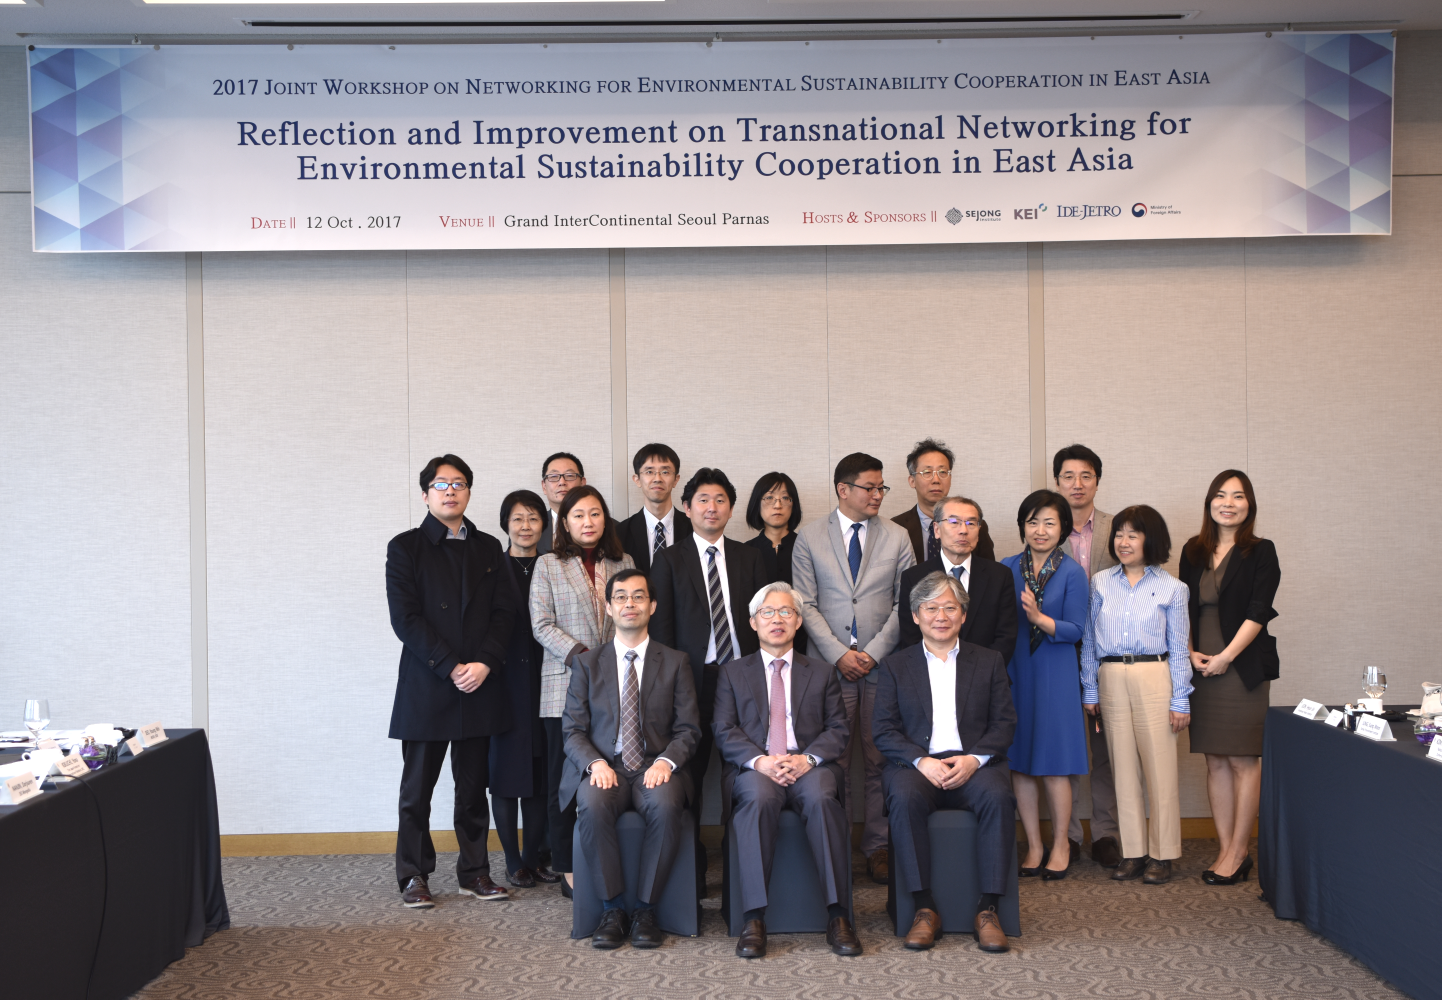 http://www.adrc.asia/adrcreport_e/archives/2017/12/27/1012_Group_Photo_m.png